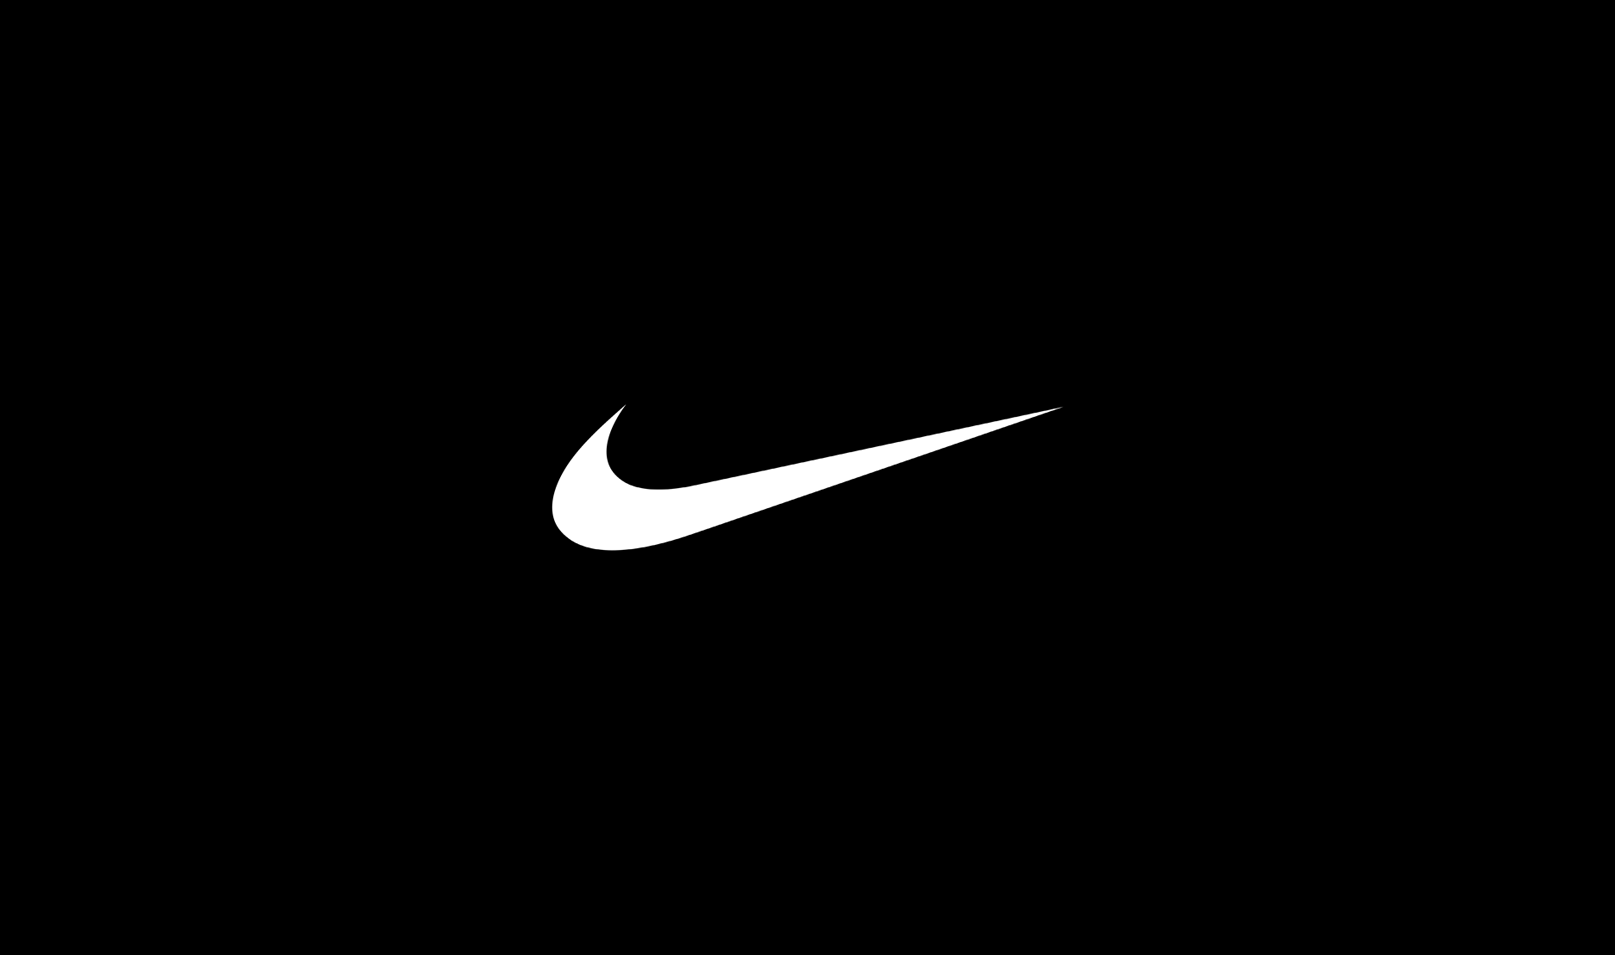 Get 40% Off Nike Products When You Purchase Two Or More